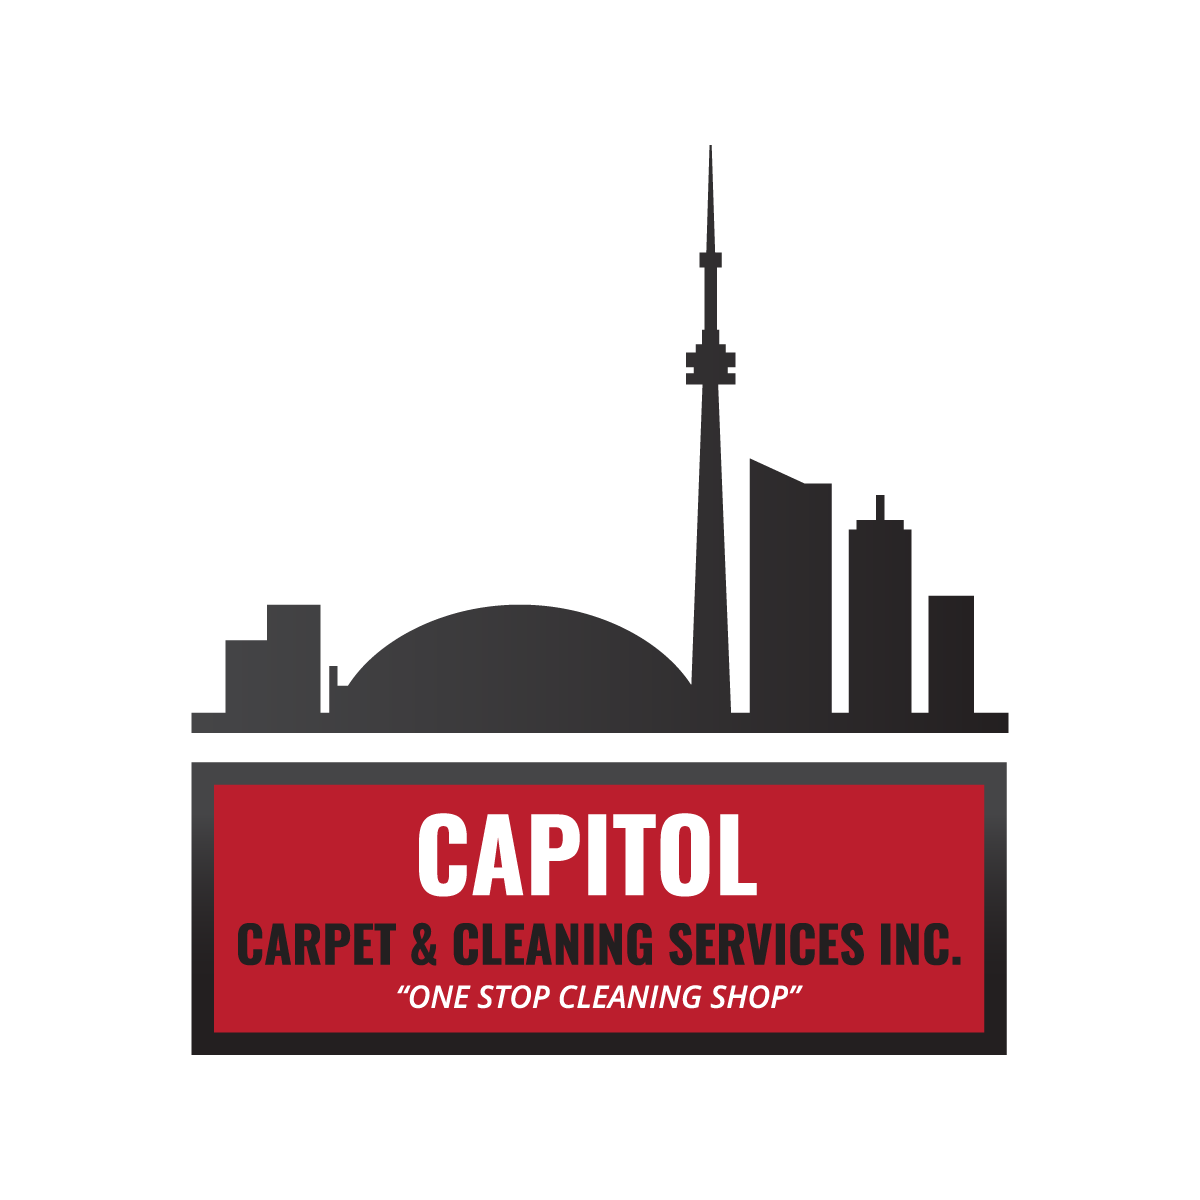 commericial, residnetial and industrial cleaning greater toronto area (logo design mockup)